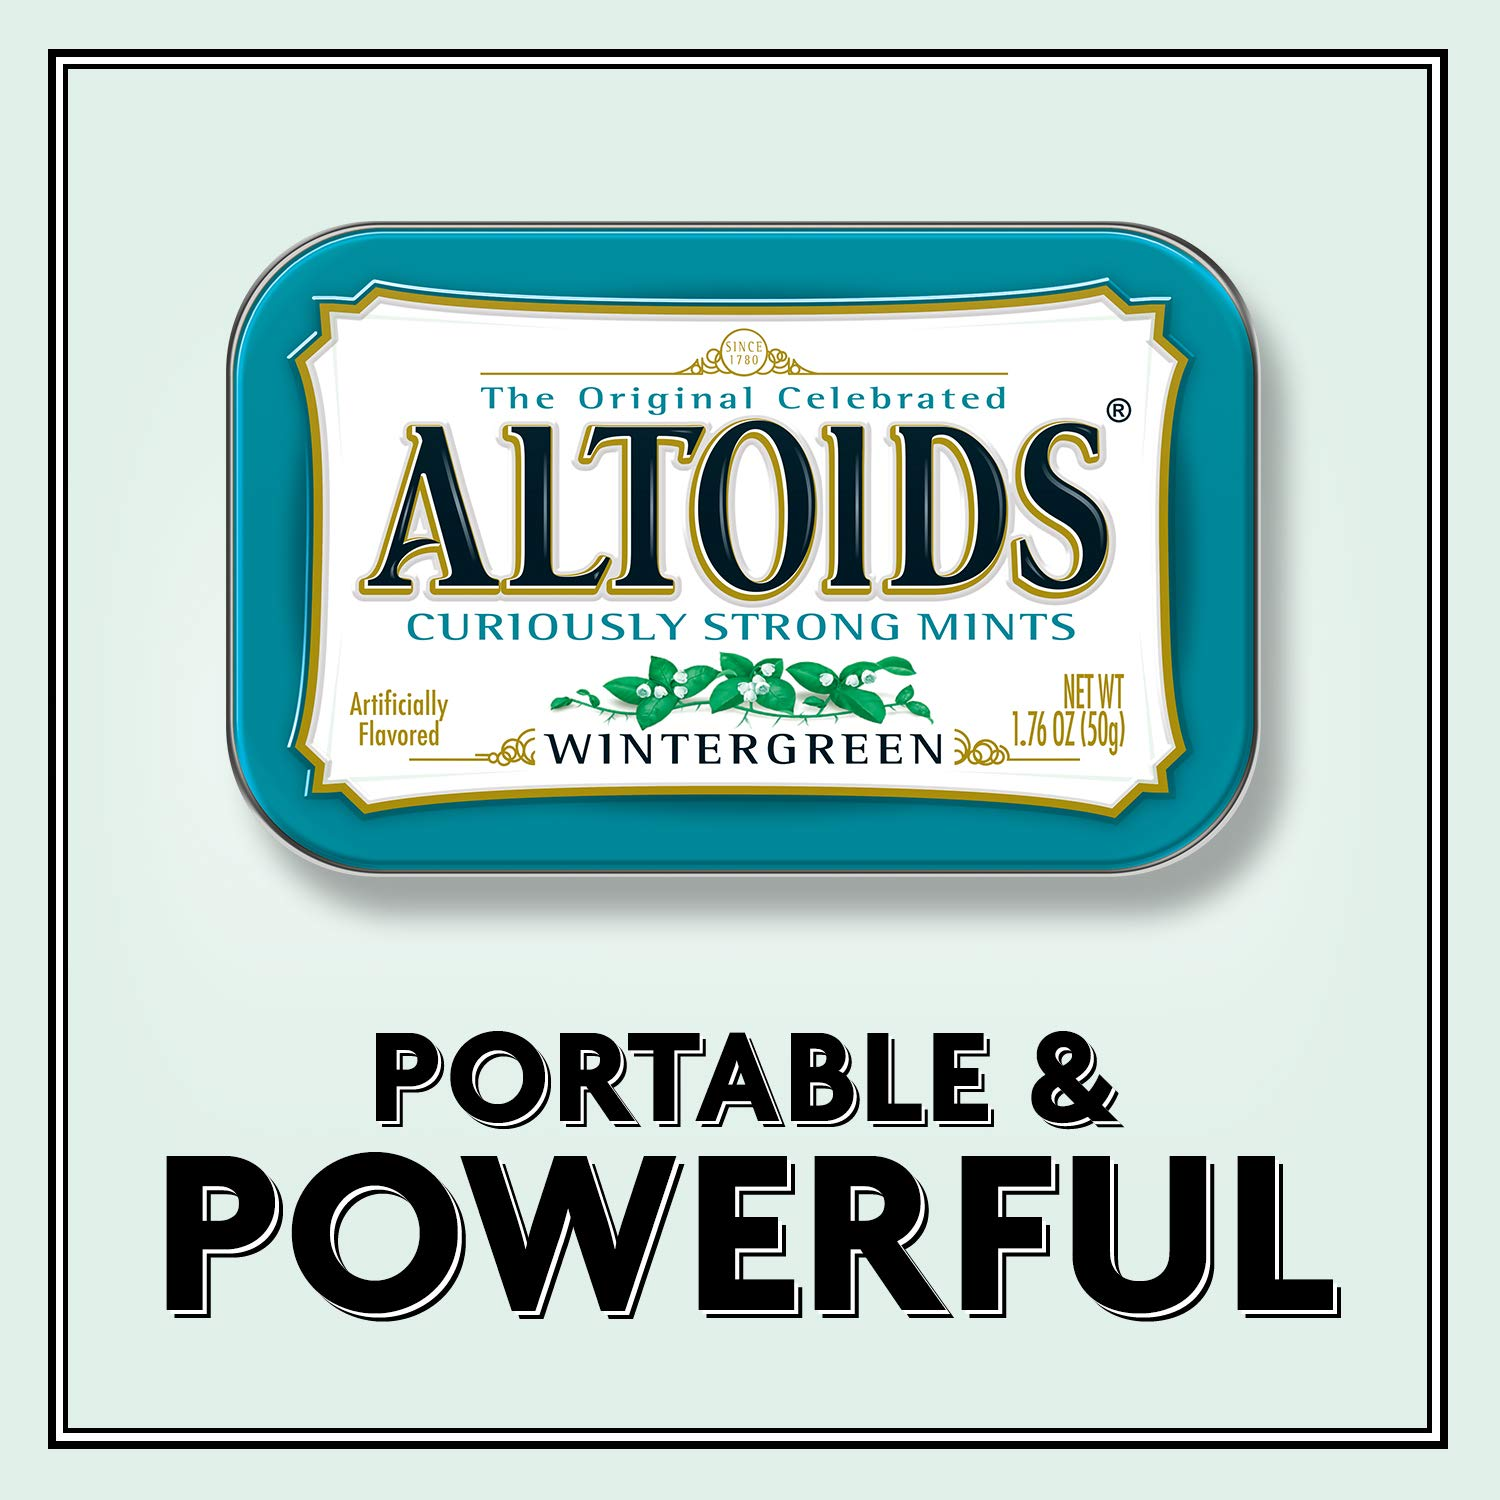 ALTOIDS Classic Wintergreen Breath Mints, 1.76-Ounce Tin (Pack of 12) by Altoids (Image #8)